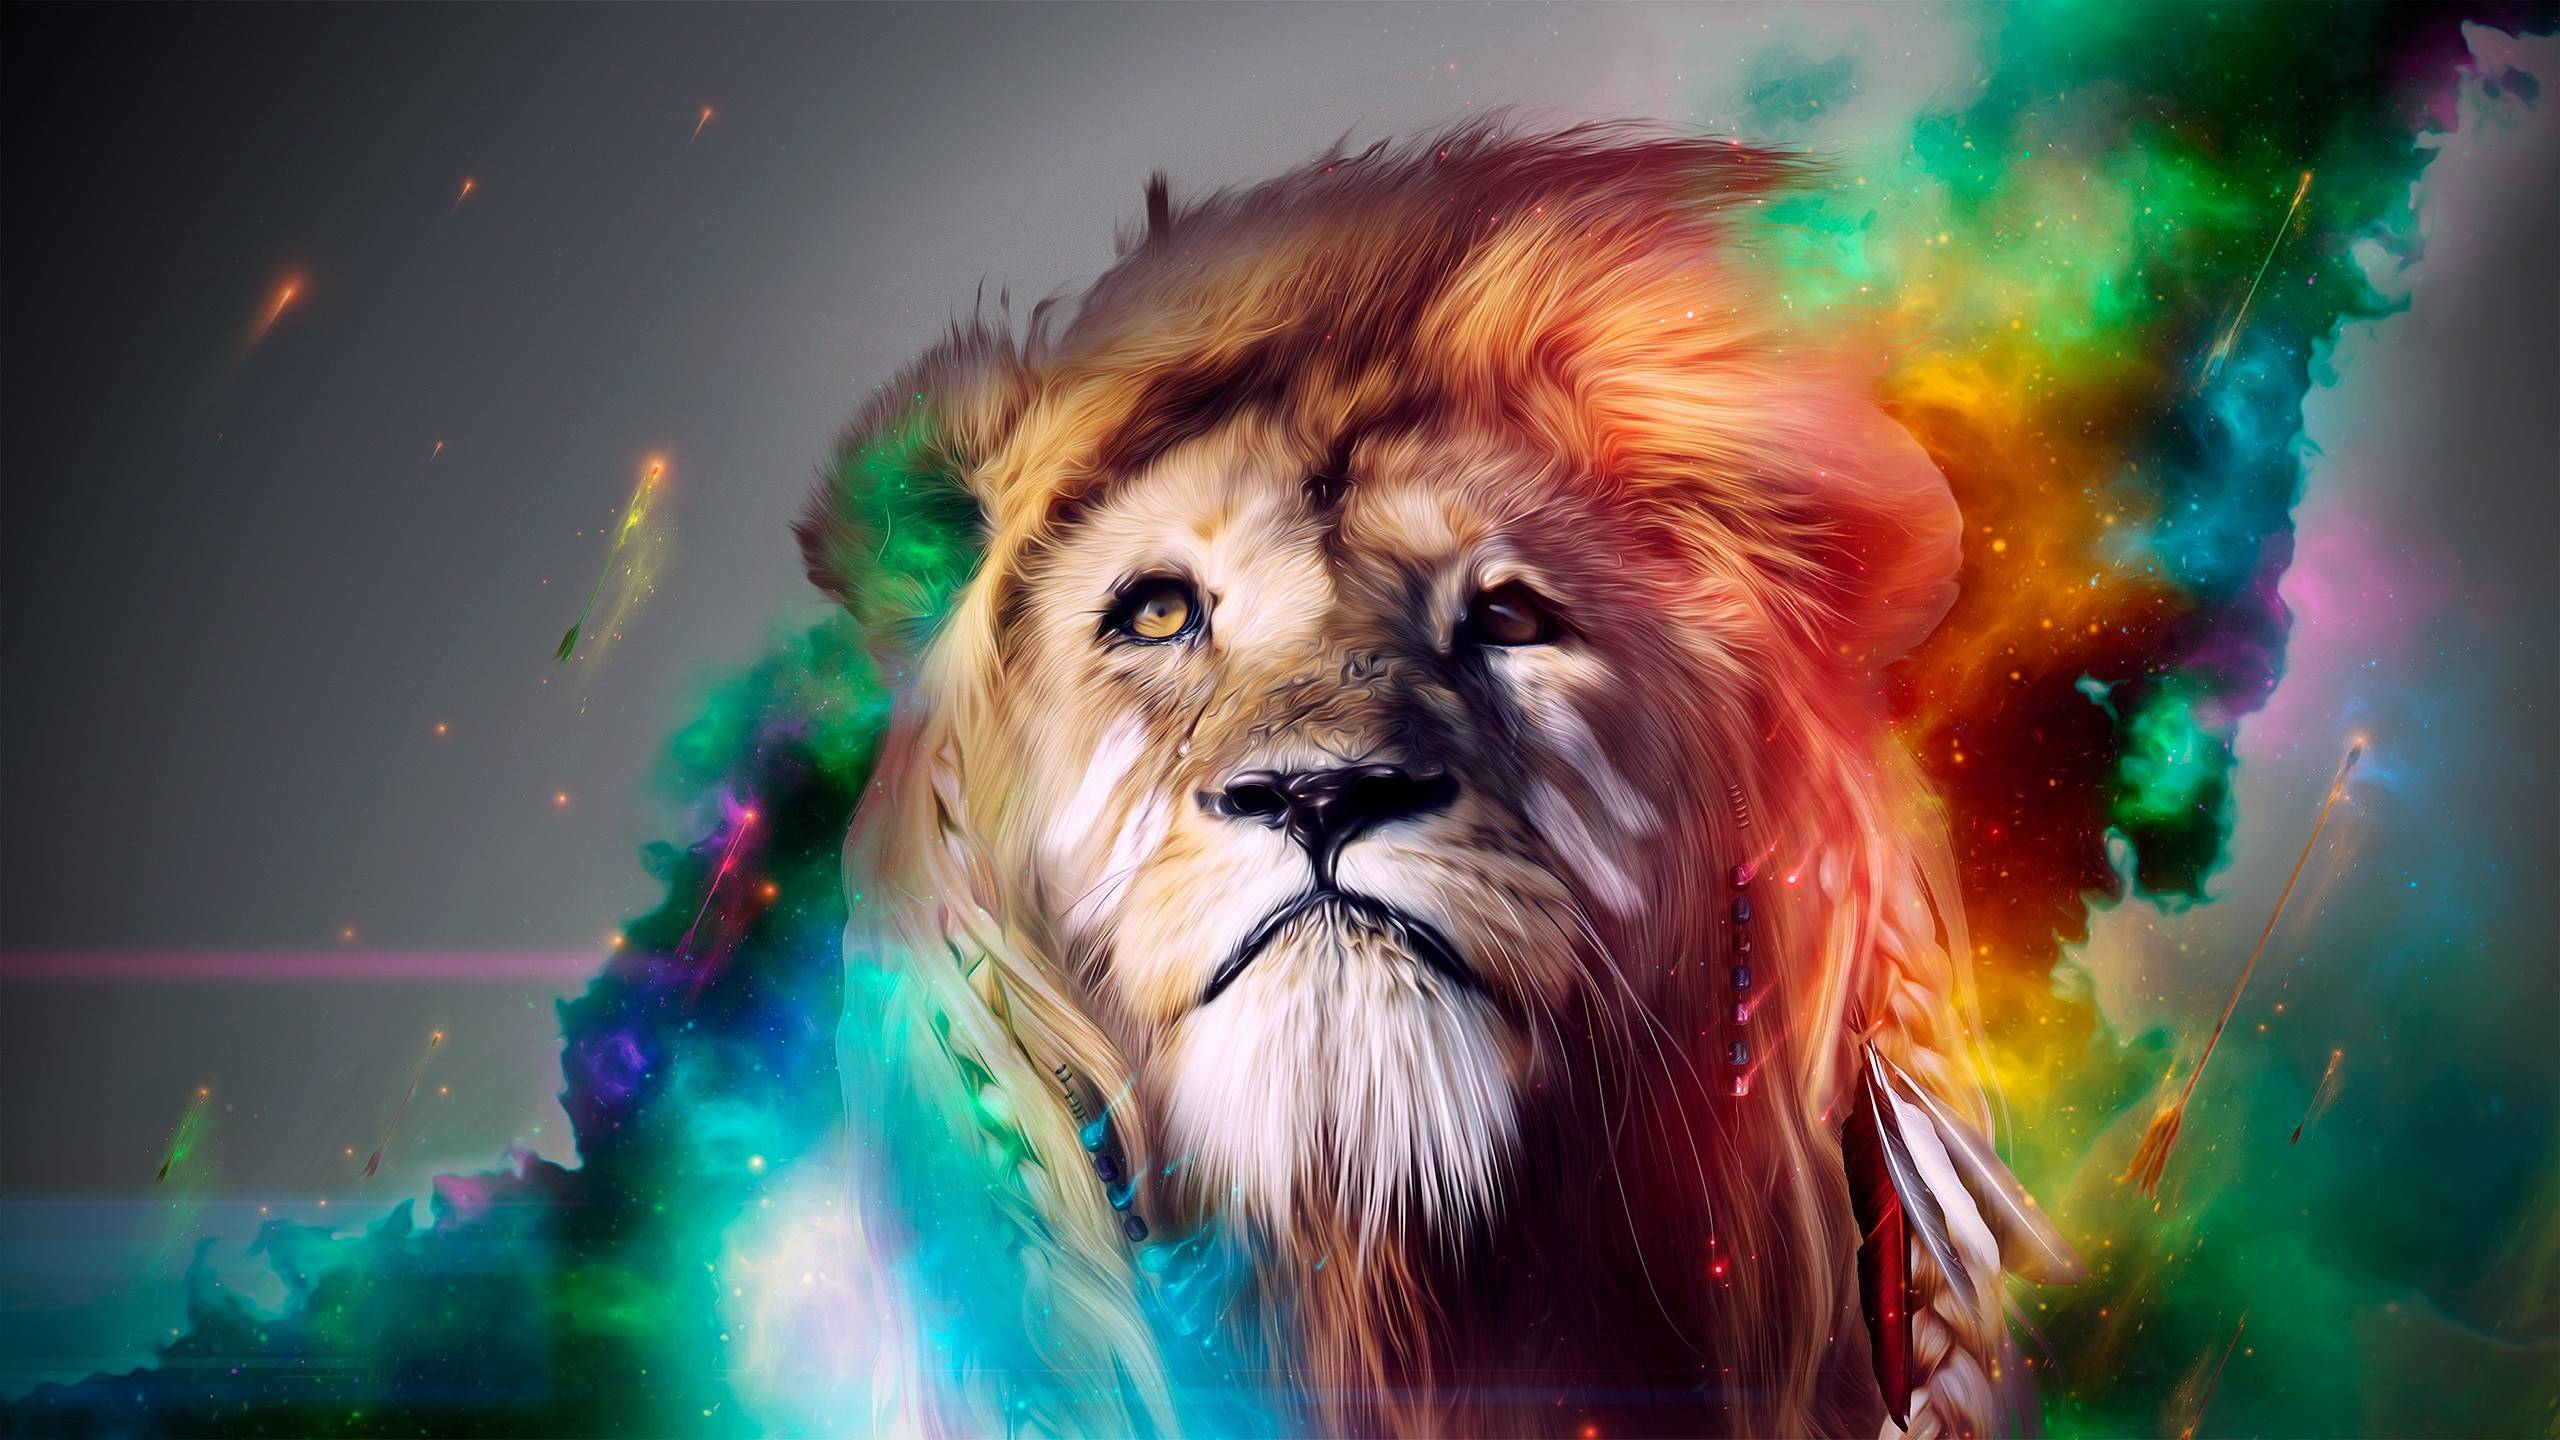 Awesome Lion Wallpaper